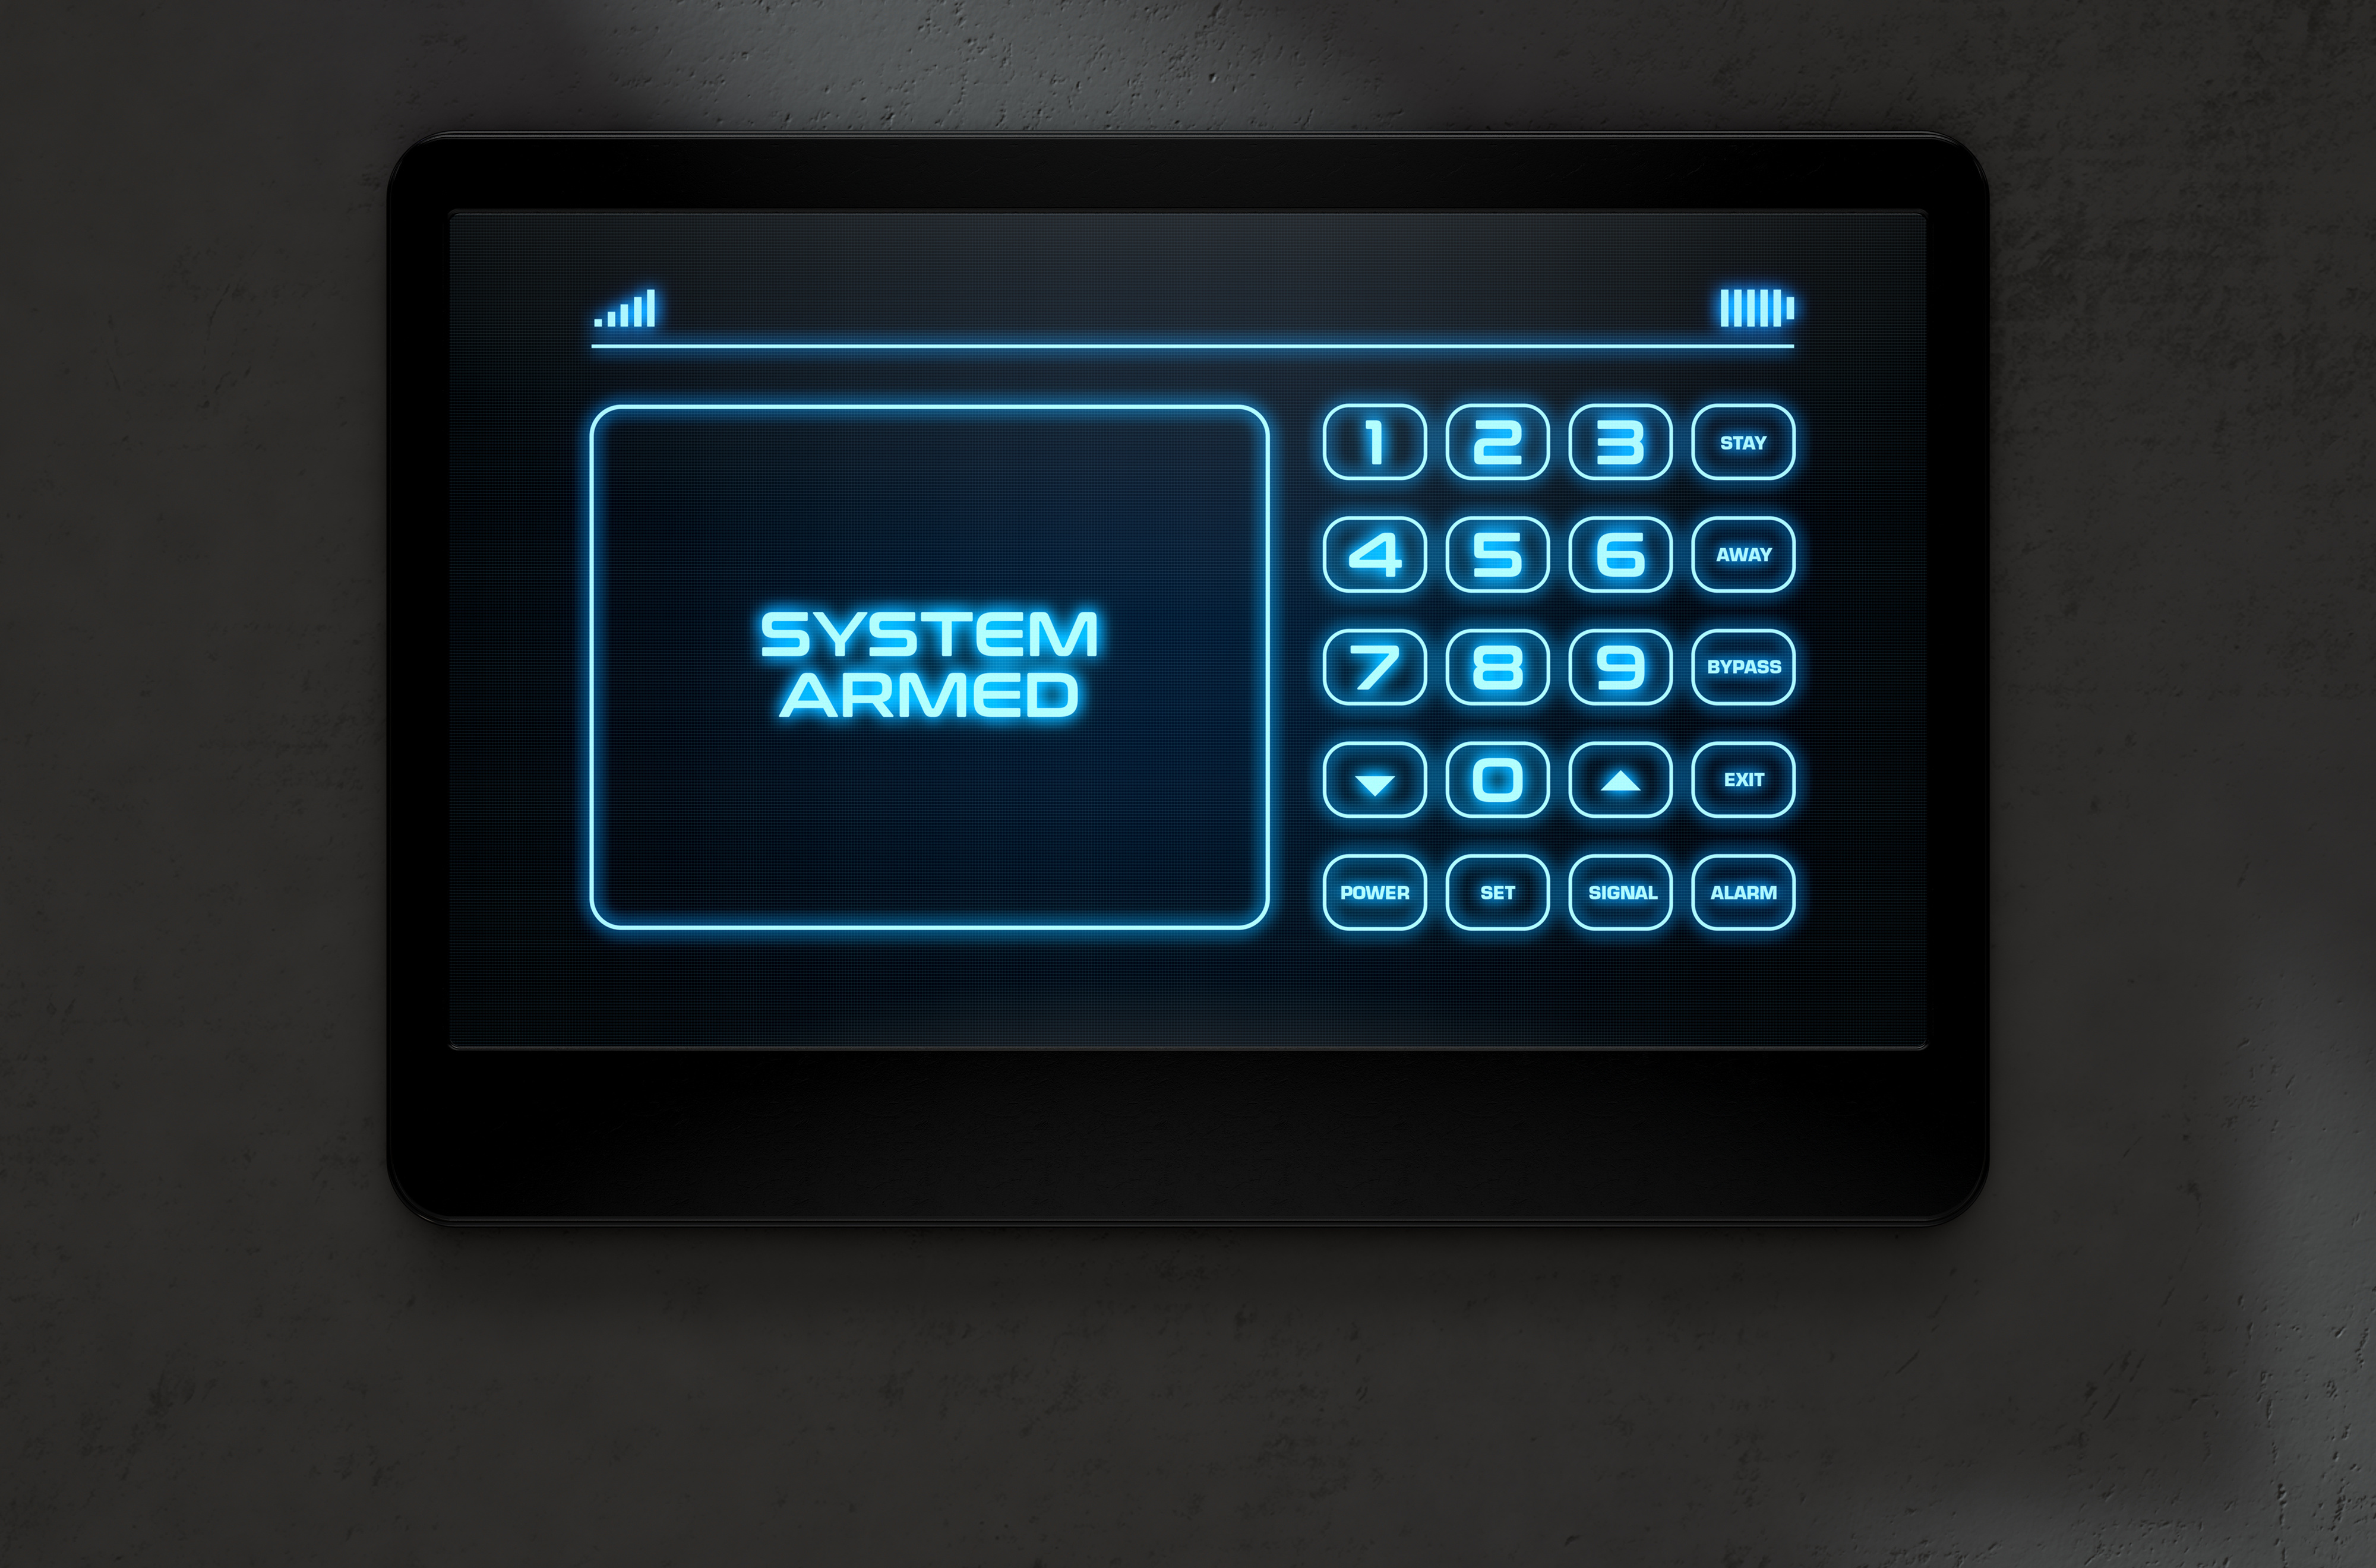 Commercial overhead door safety and access digital controls keypad